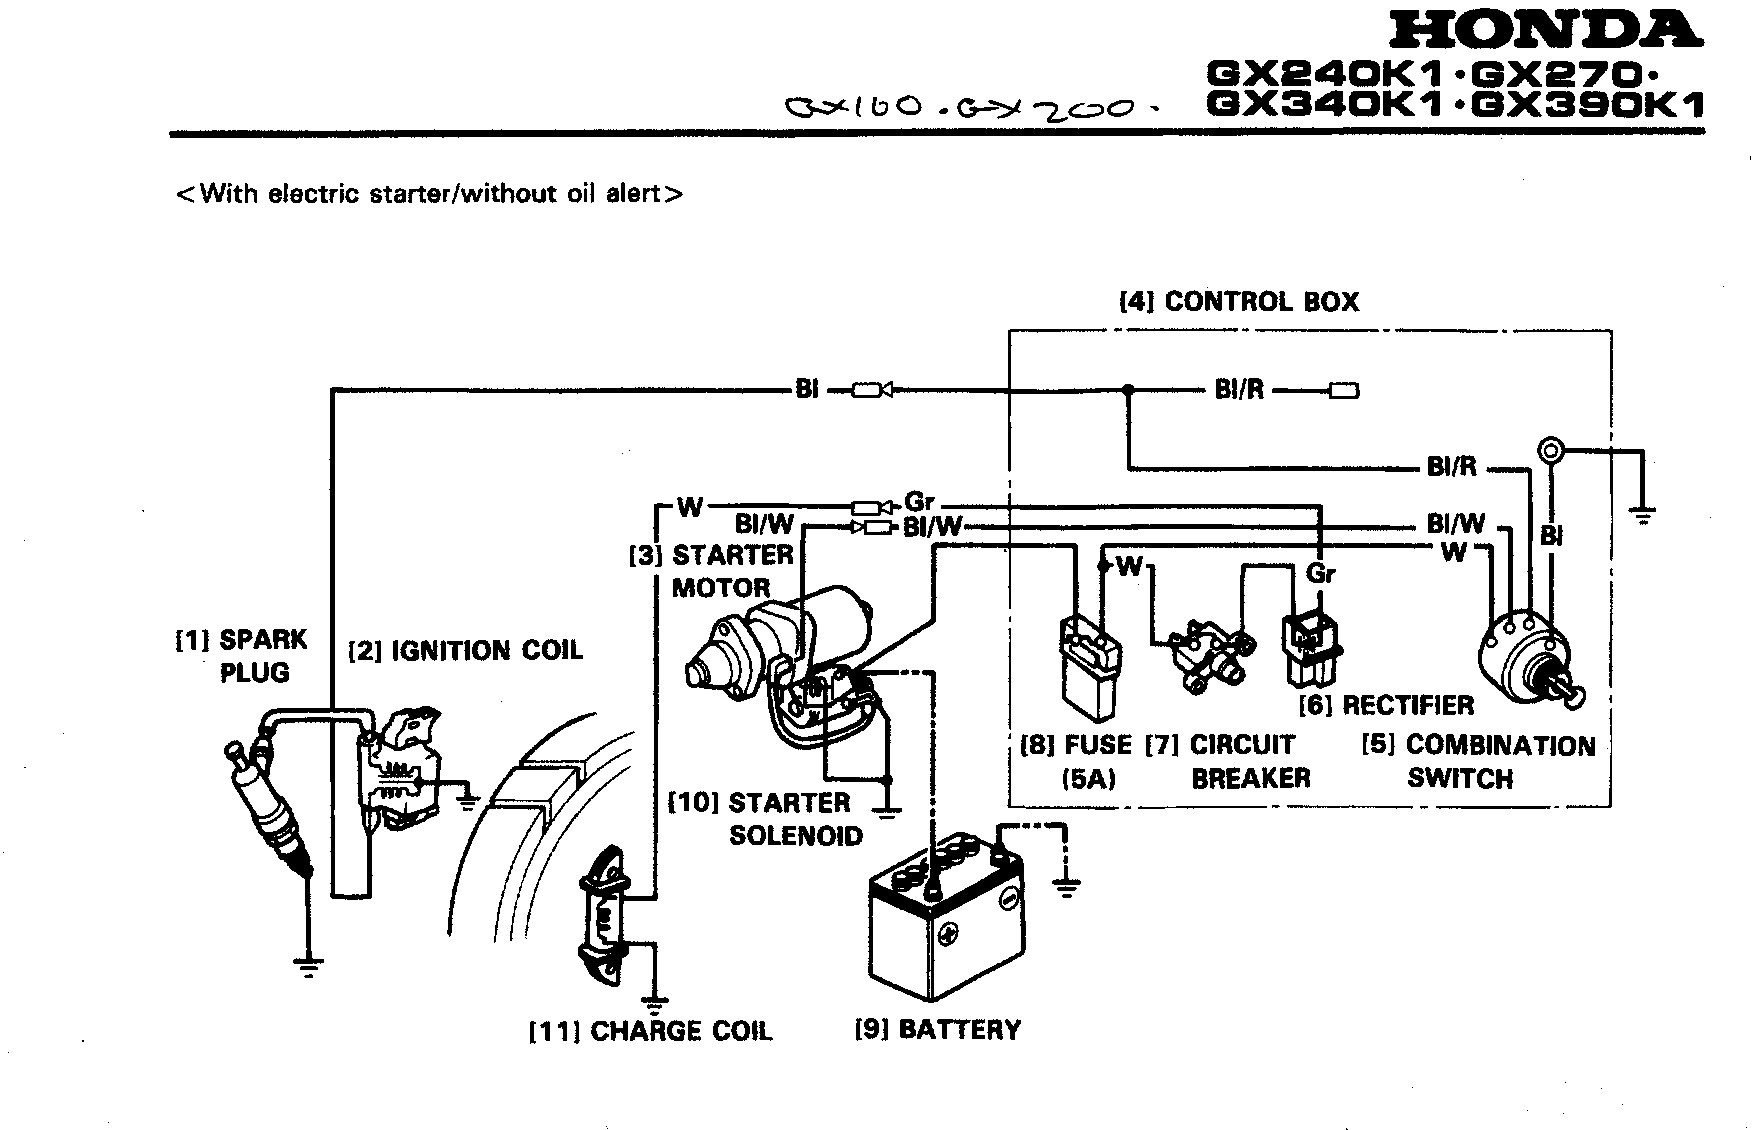 Wiring Diagram For John Deere 112l Trusted 5425 Solenoid 111h Diagrams Enthusiast U2022 Parts